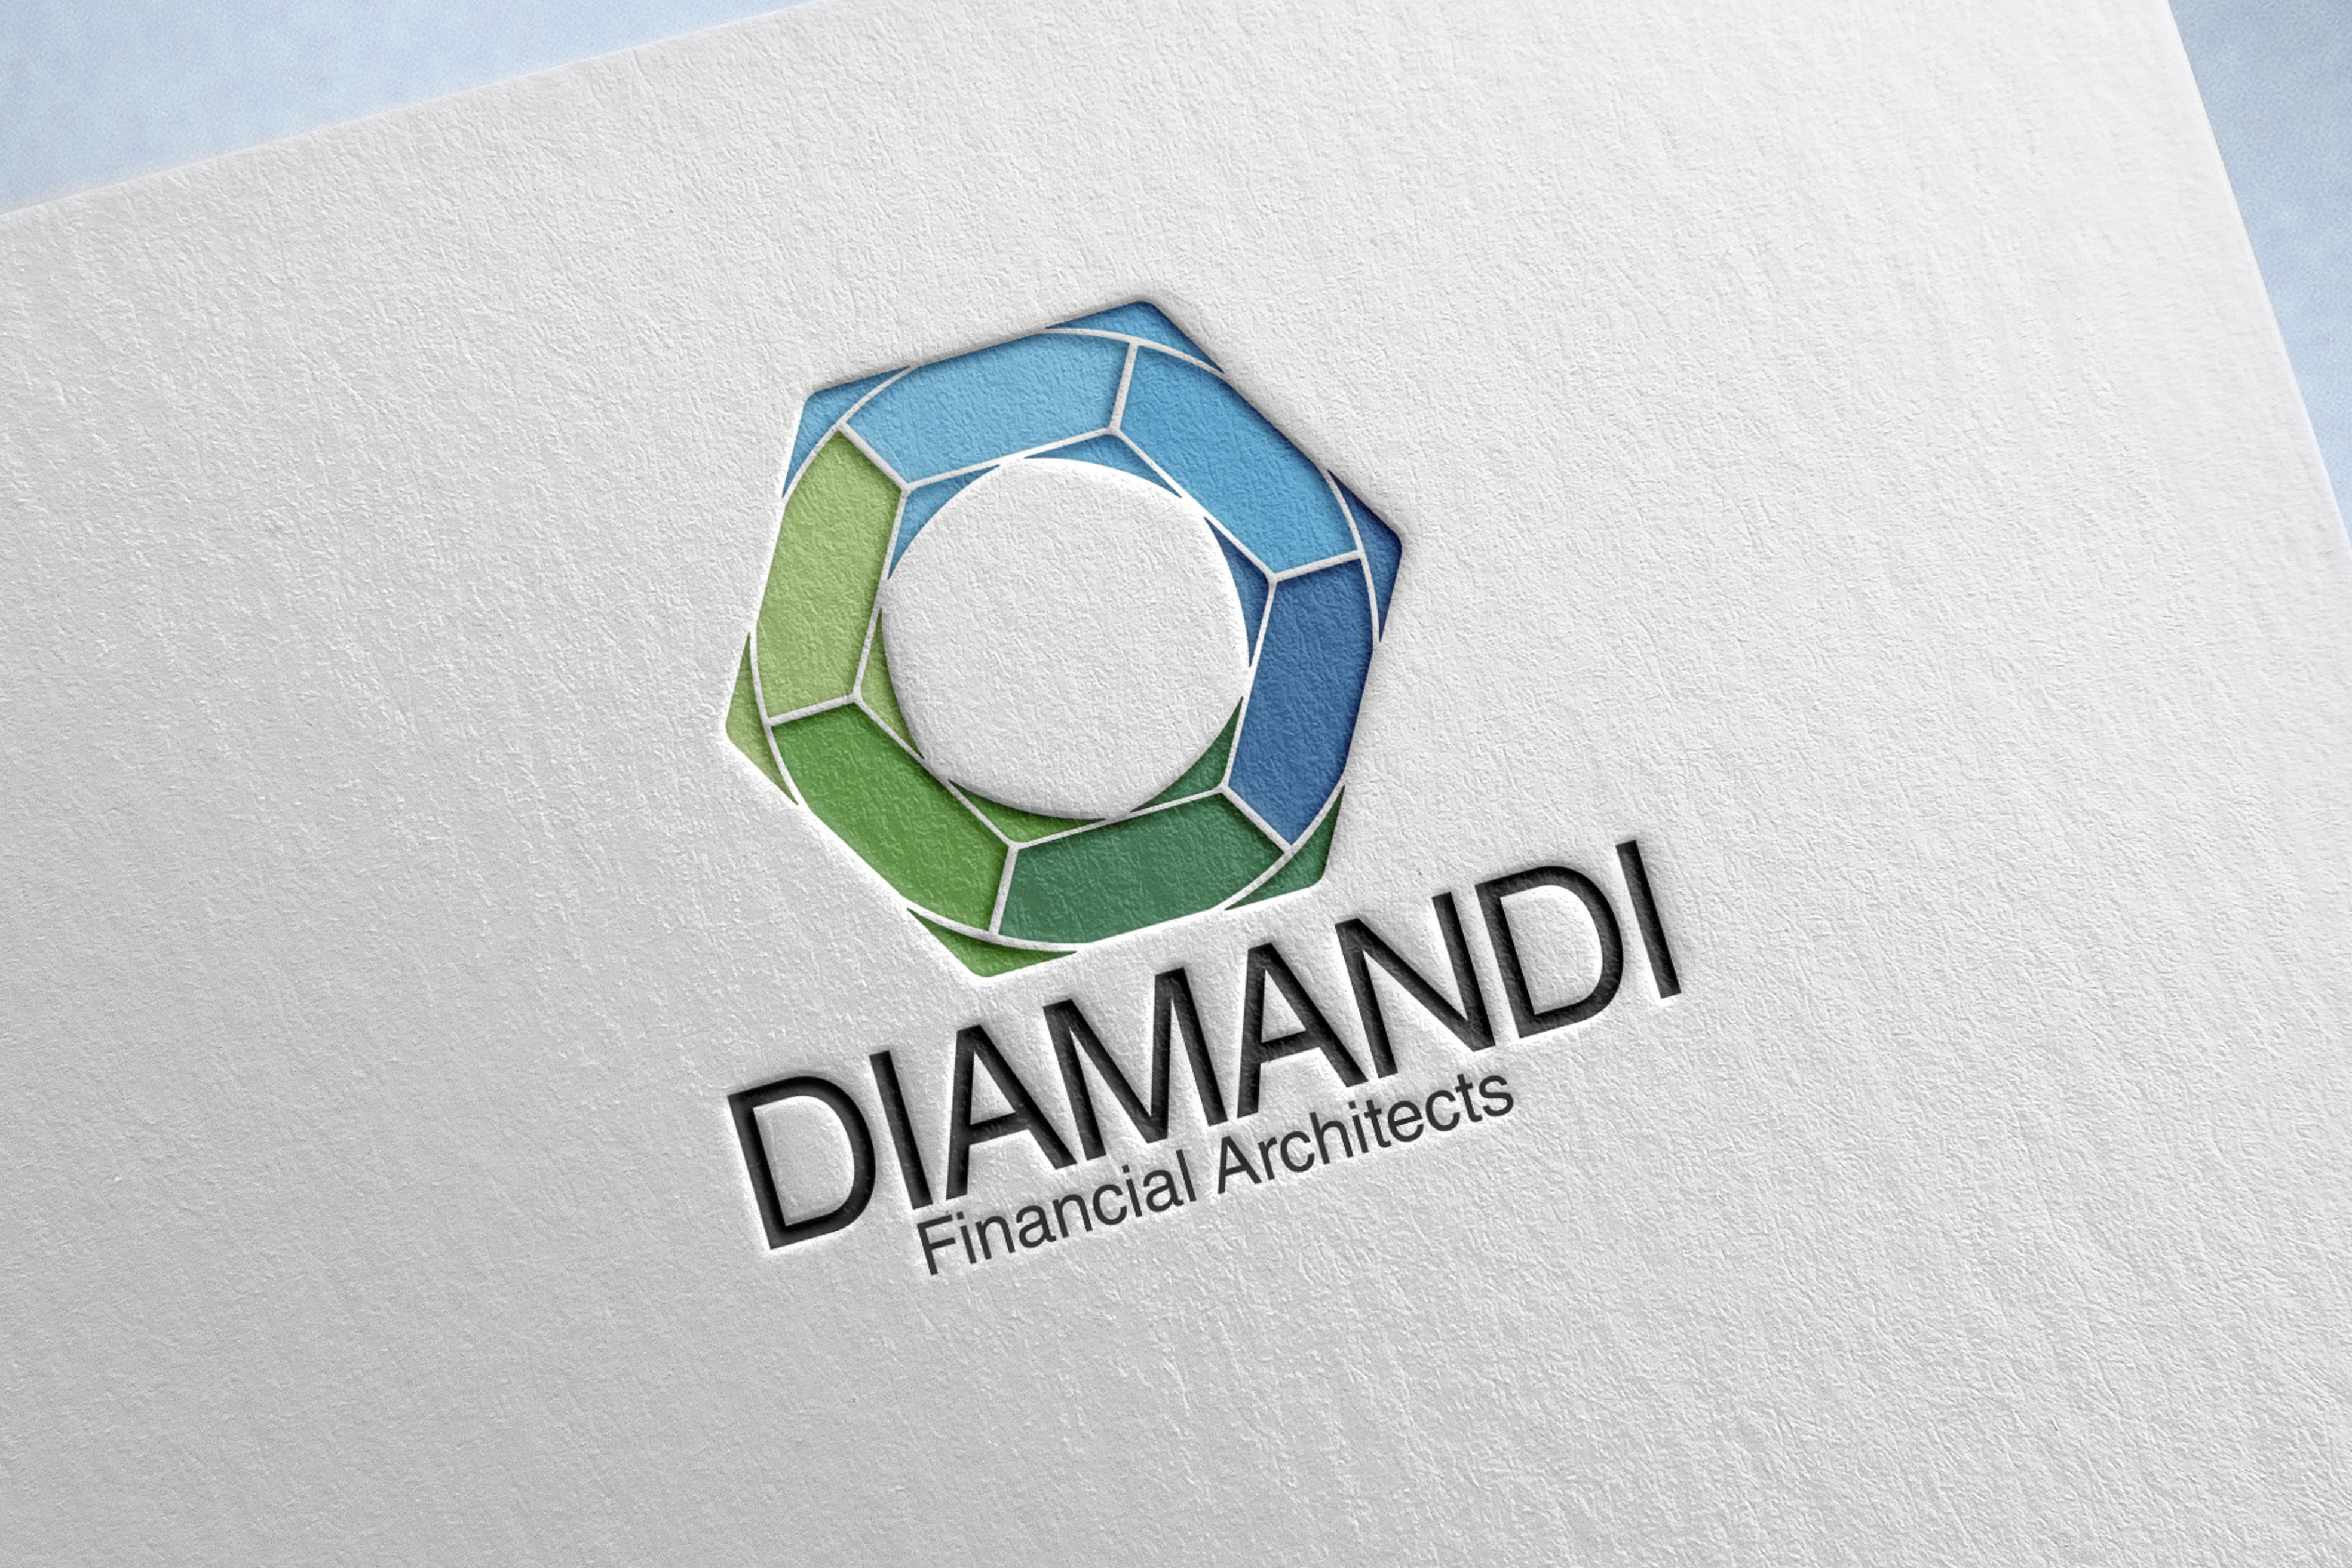 Diamandi Financial Architect